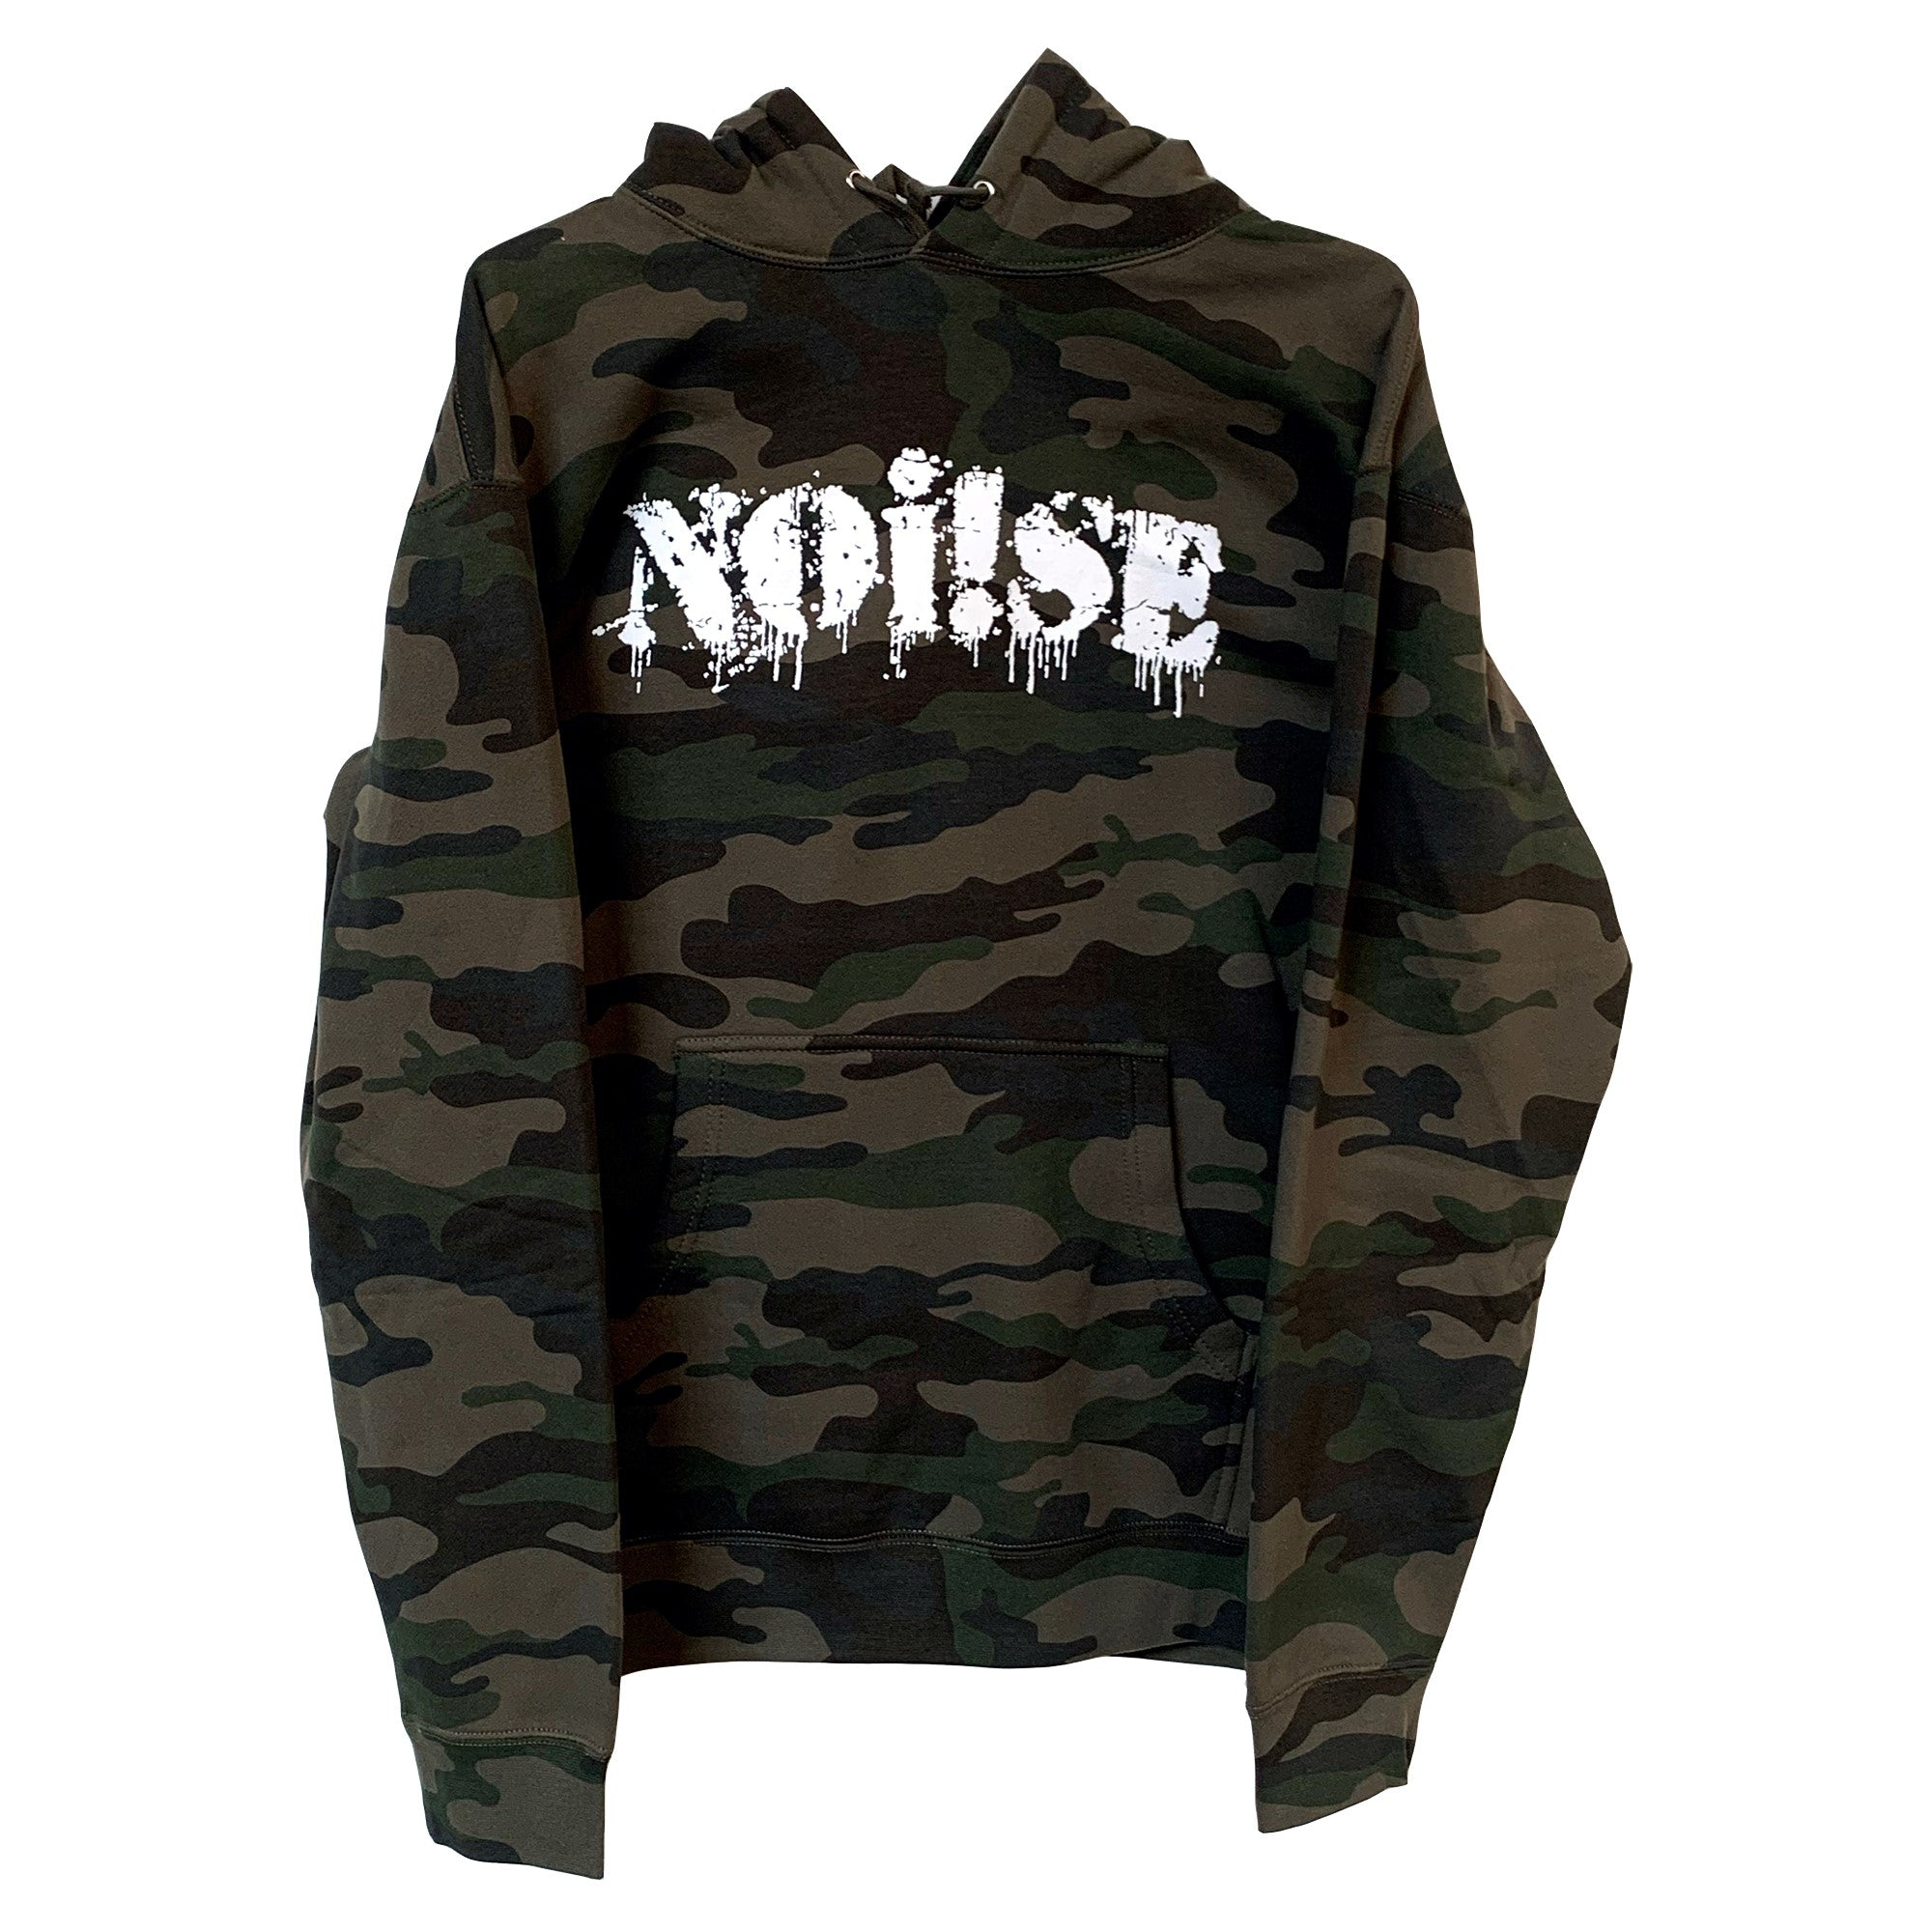 NOi!SE - Logo - White on Camo - Hooded Sweatshirt